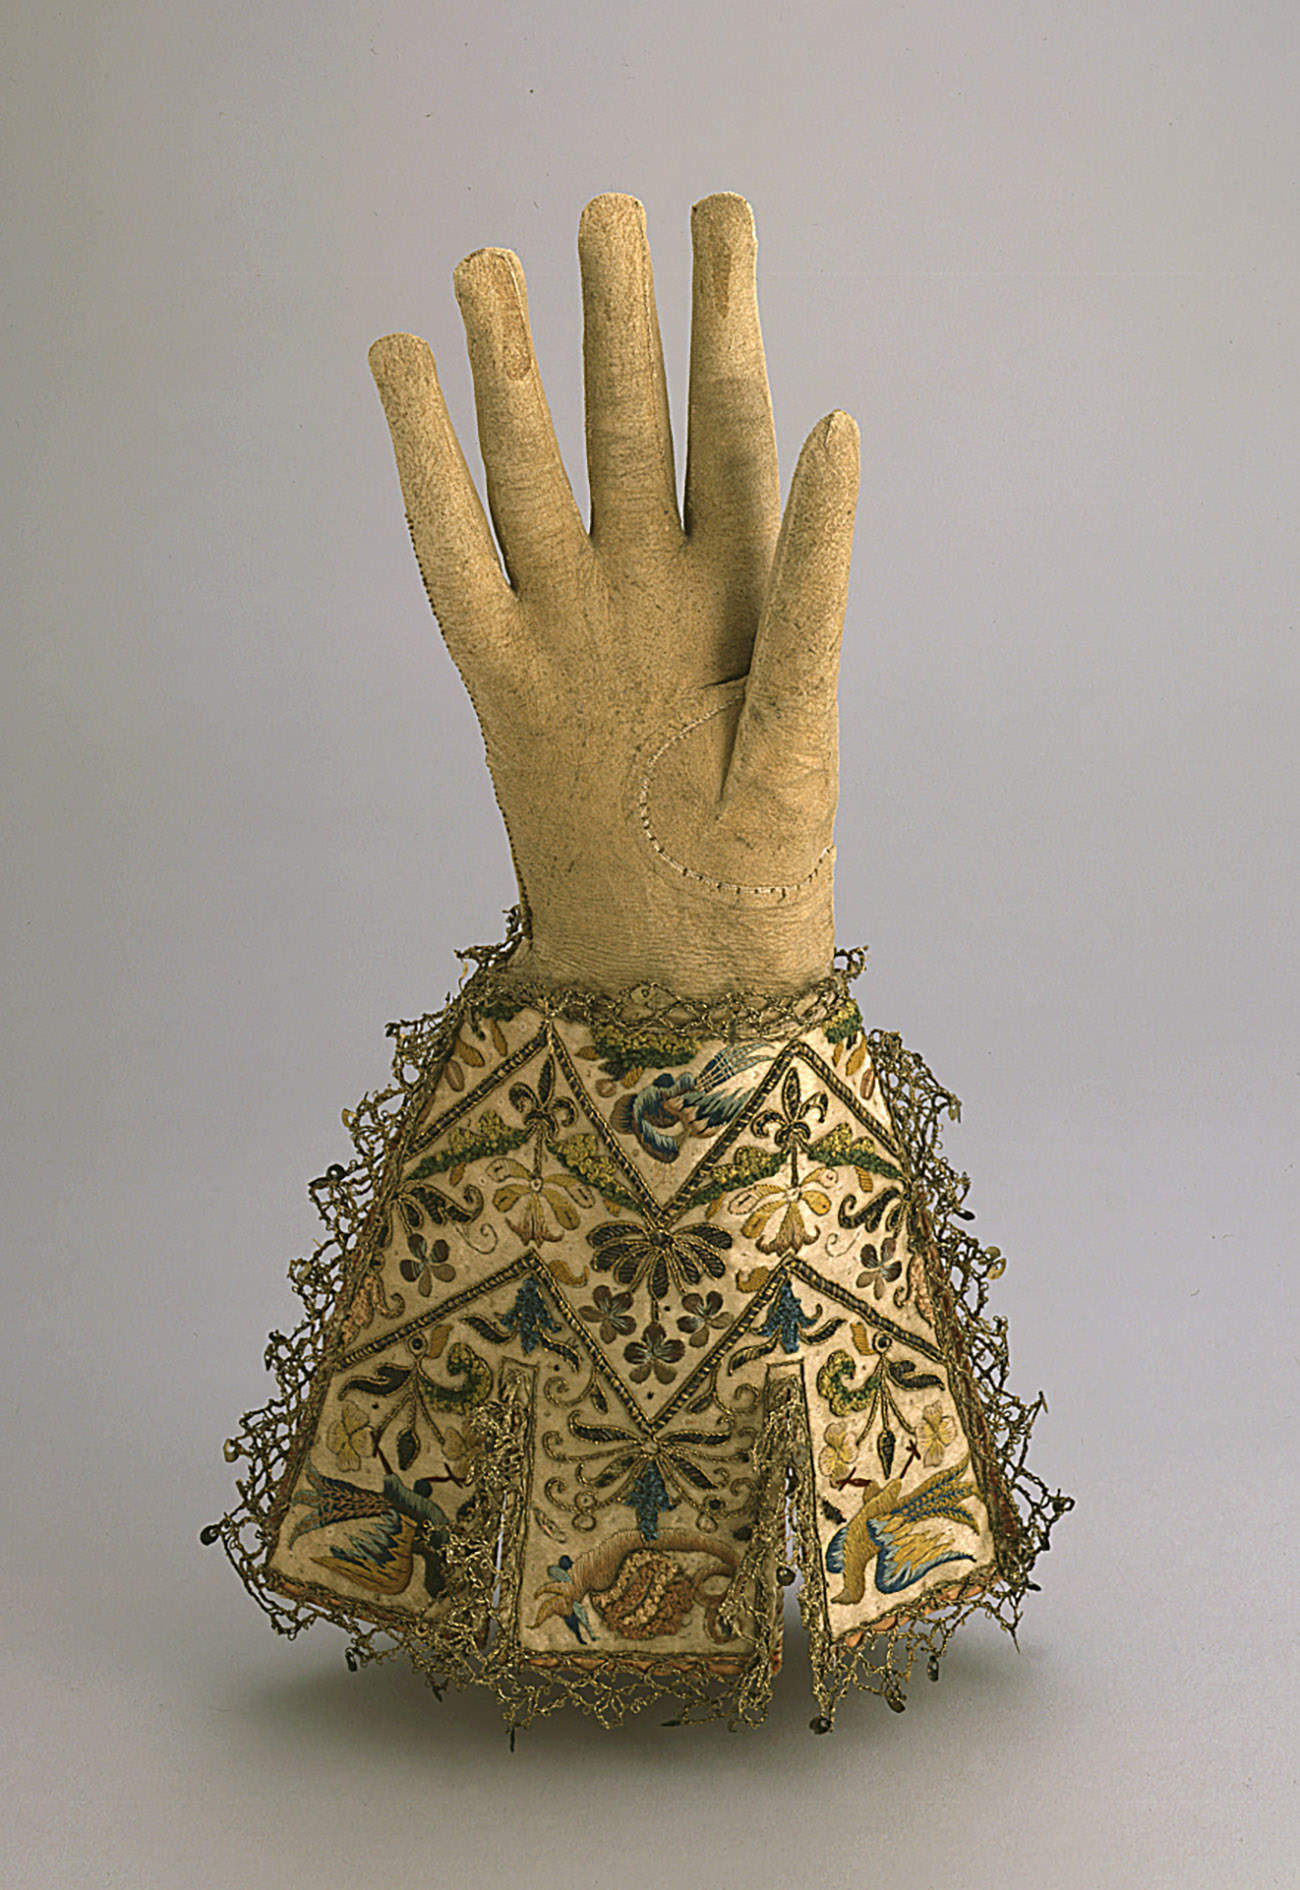 Mustard color glove with embroidery around the wrist.